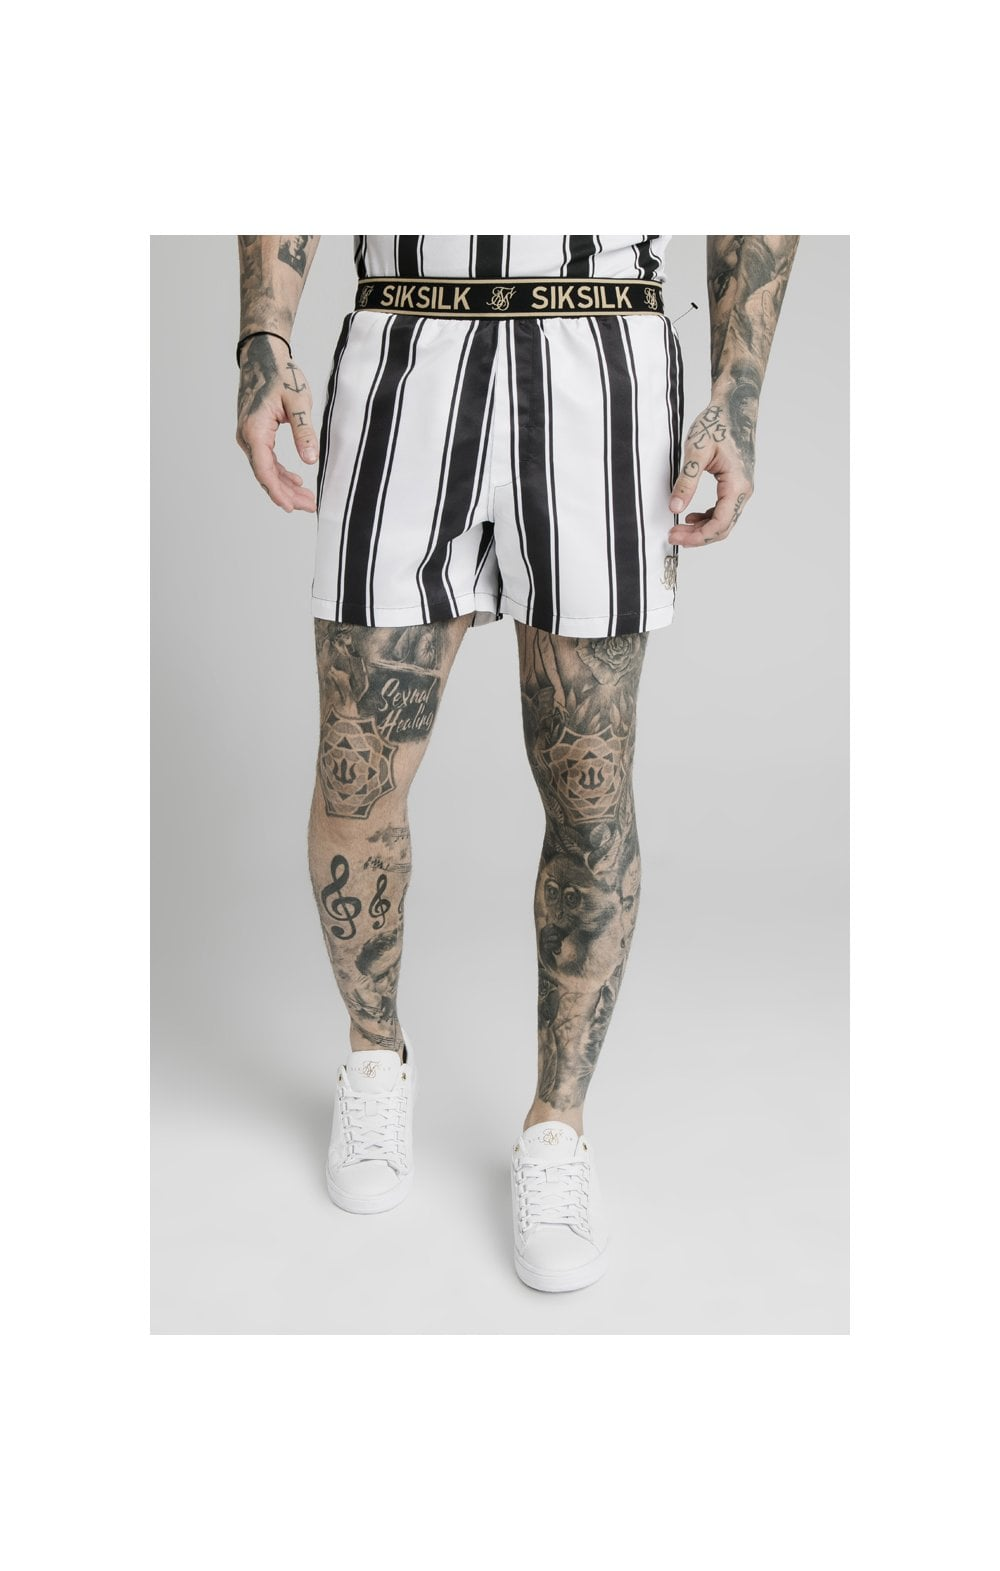 Load image into Gallery viewer, SikSilk Standard Swim Shorts - Black & White